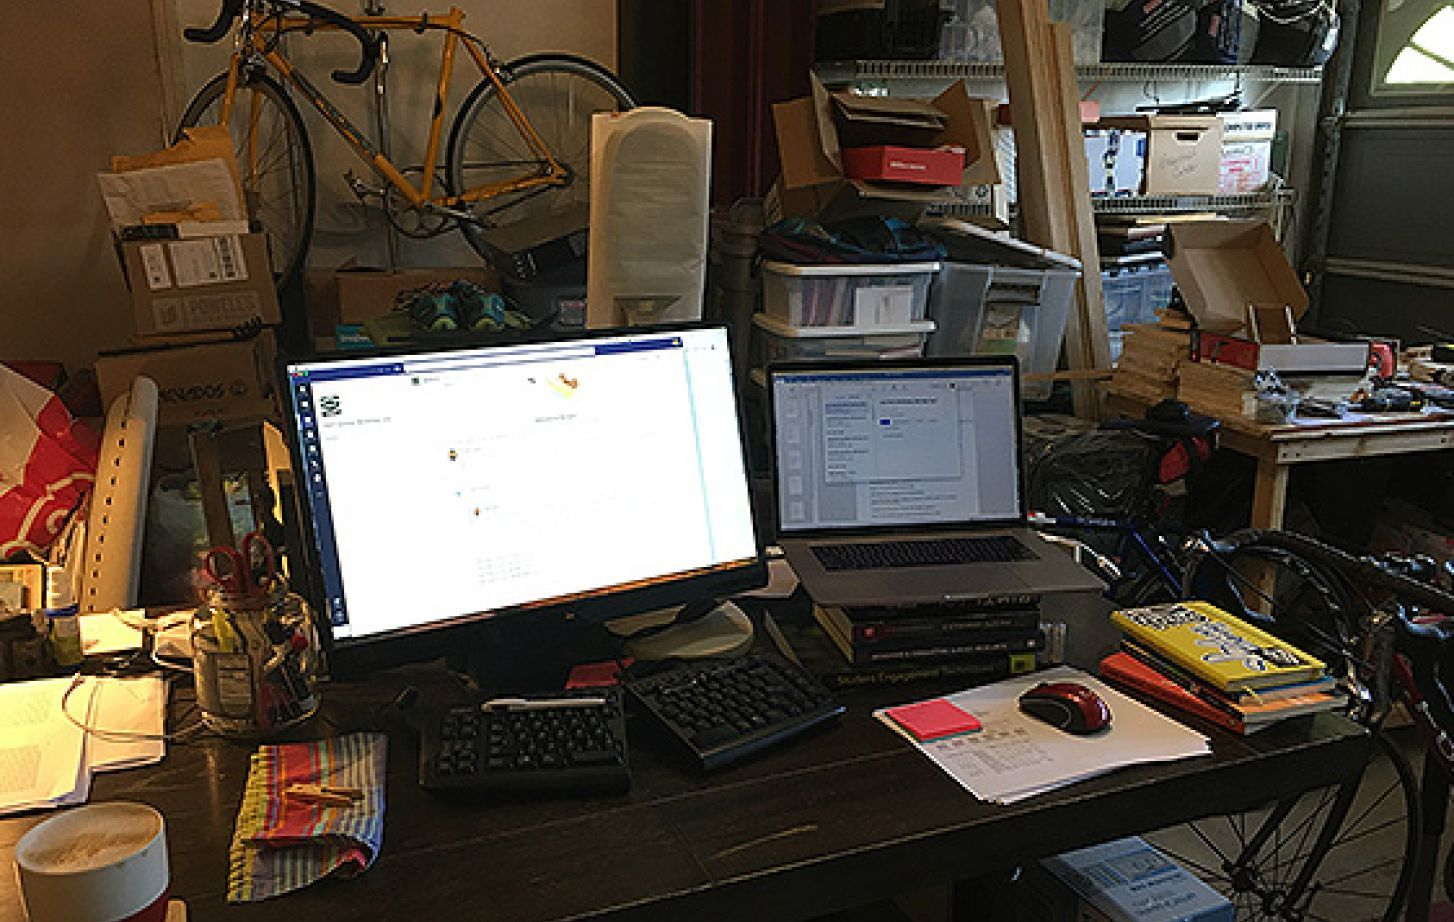 Political science professor Keith Smith has set up an office in his garage at home.